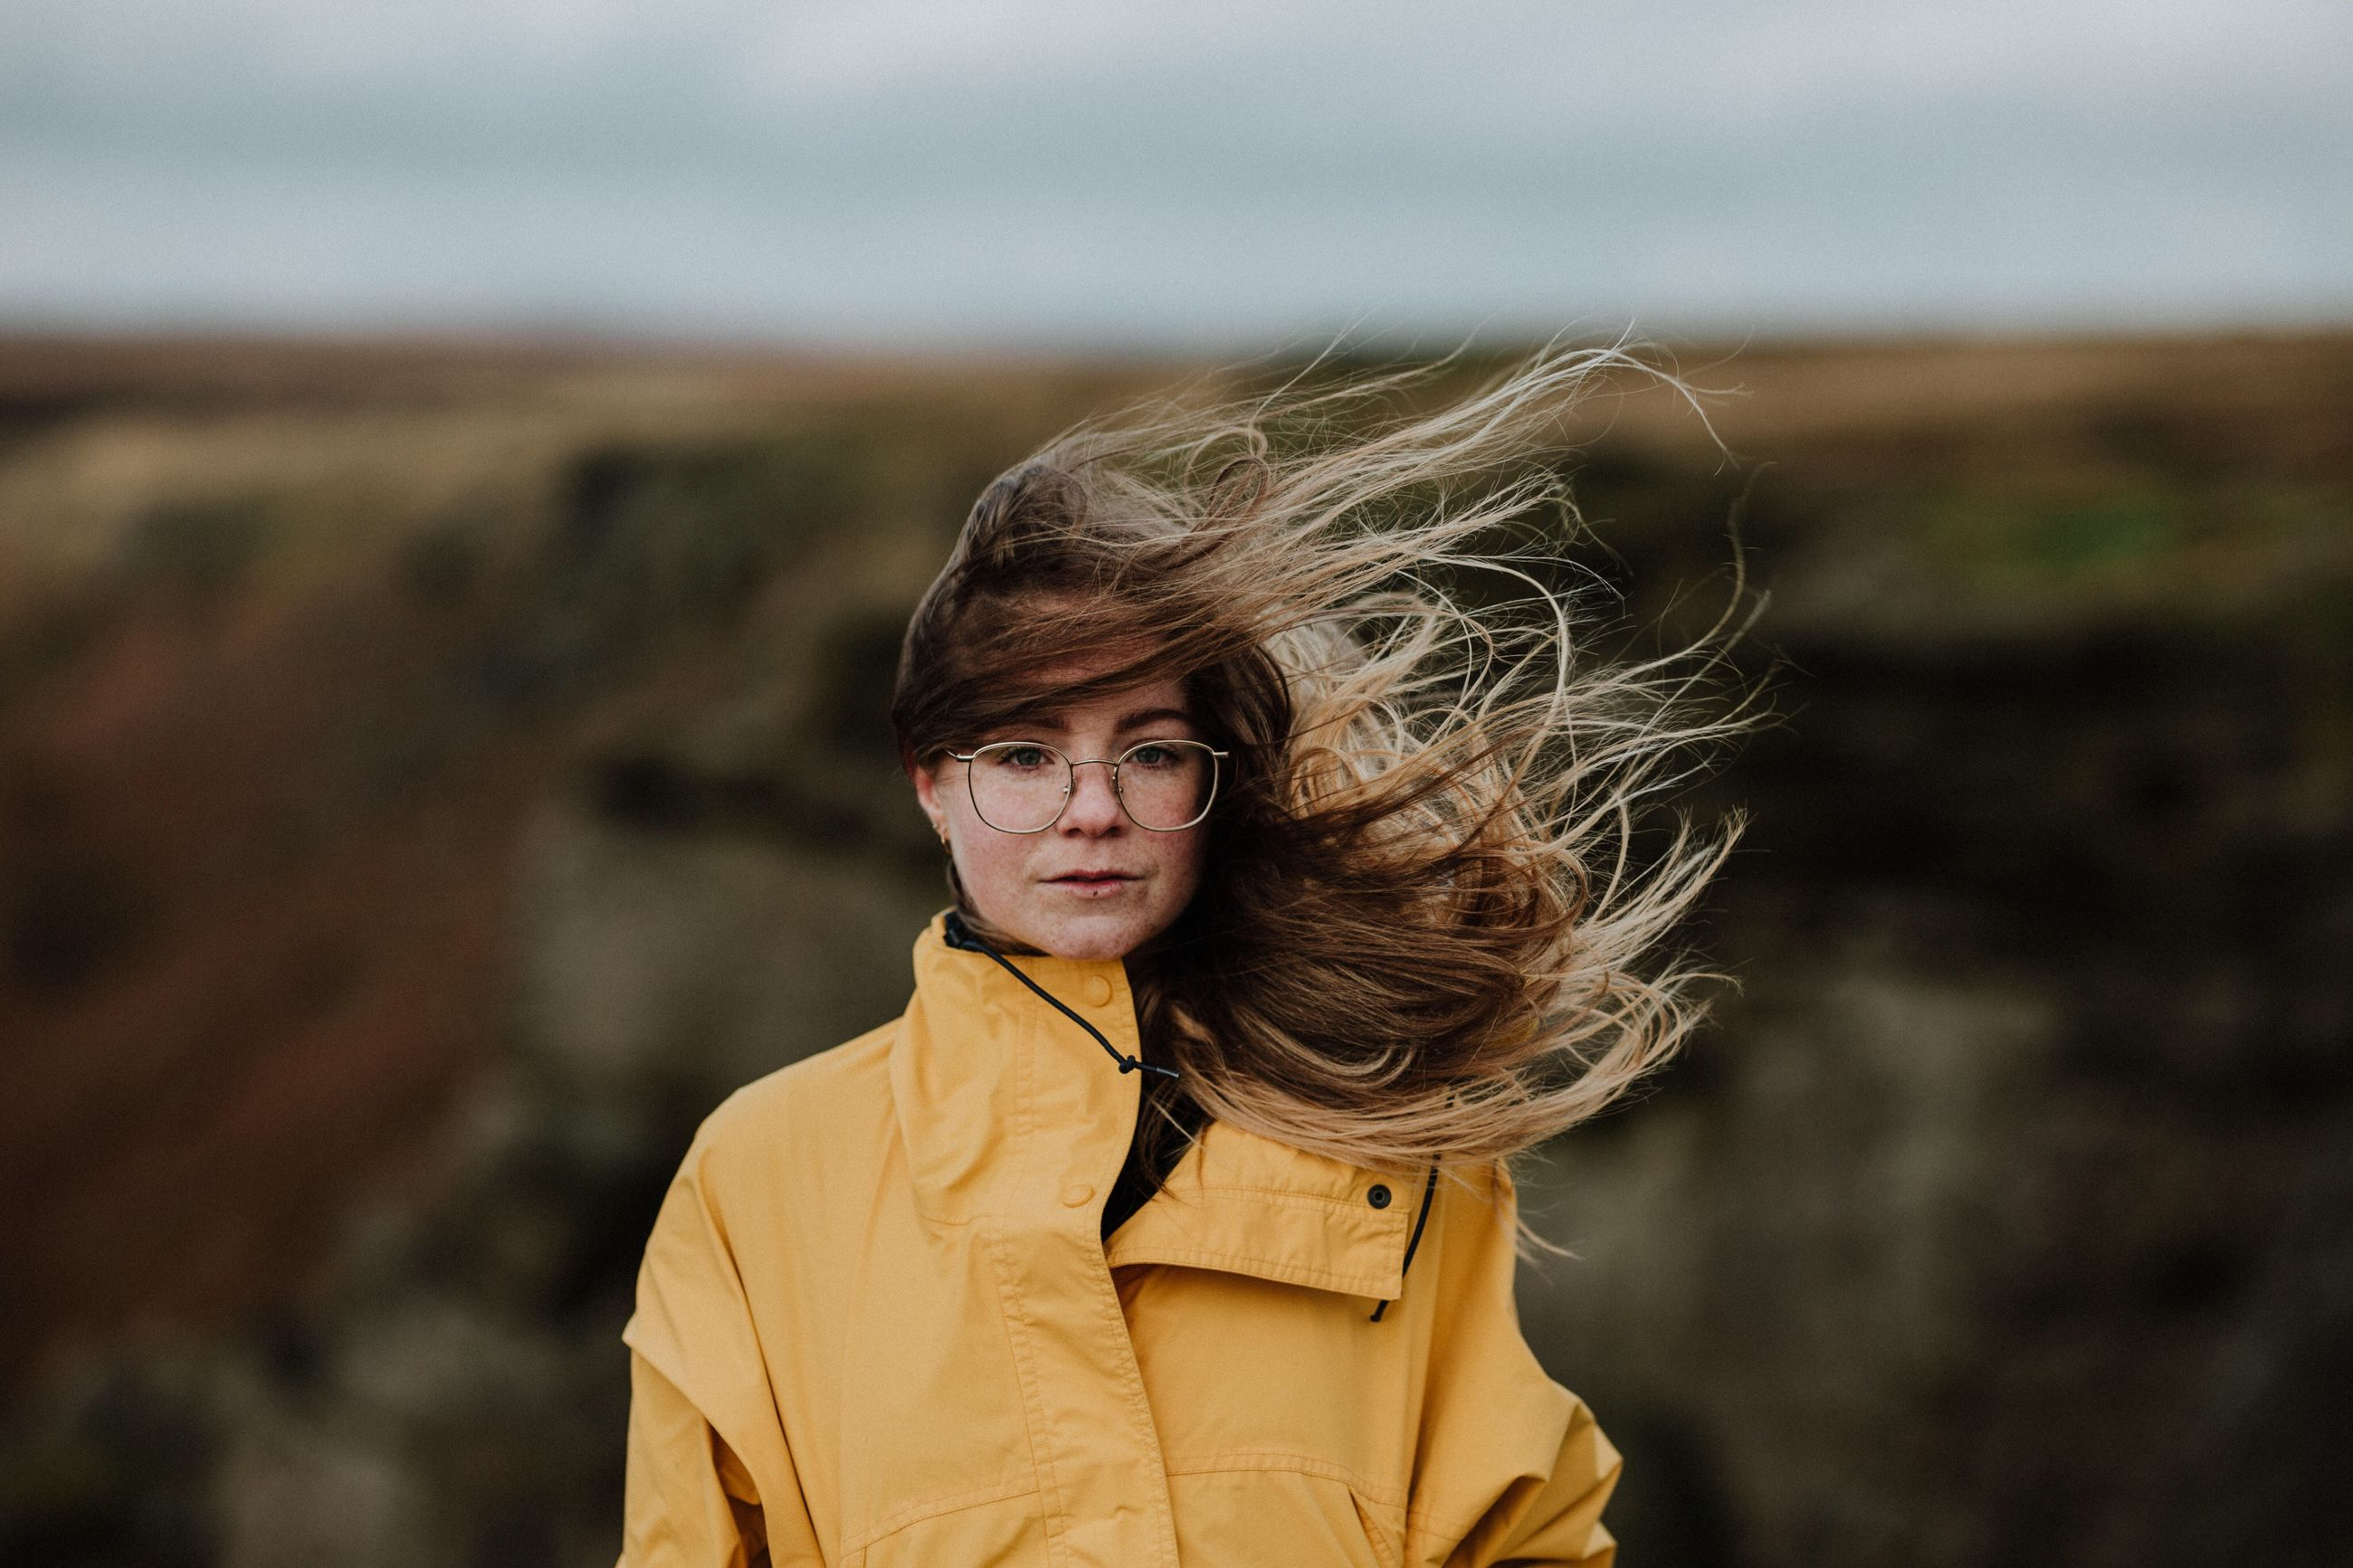 real people, focus on foreground, one person, young women, front view, casual clothing, looking at camera, leisure activity, young adult, lifestyles, standing, outdoors, day, nature, portrait, yellow, sky, beautiful woman, beauty in nature